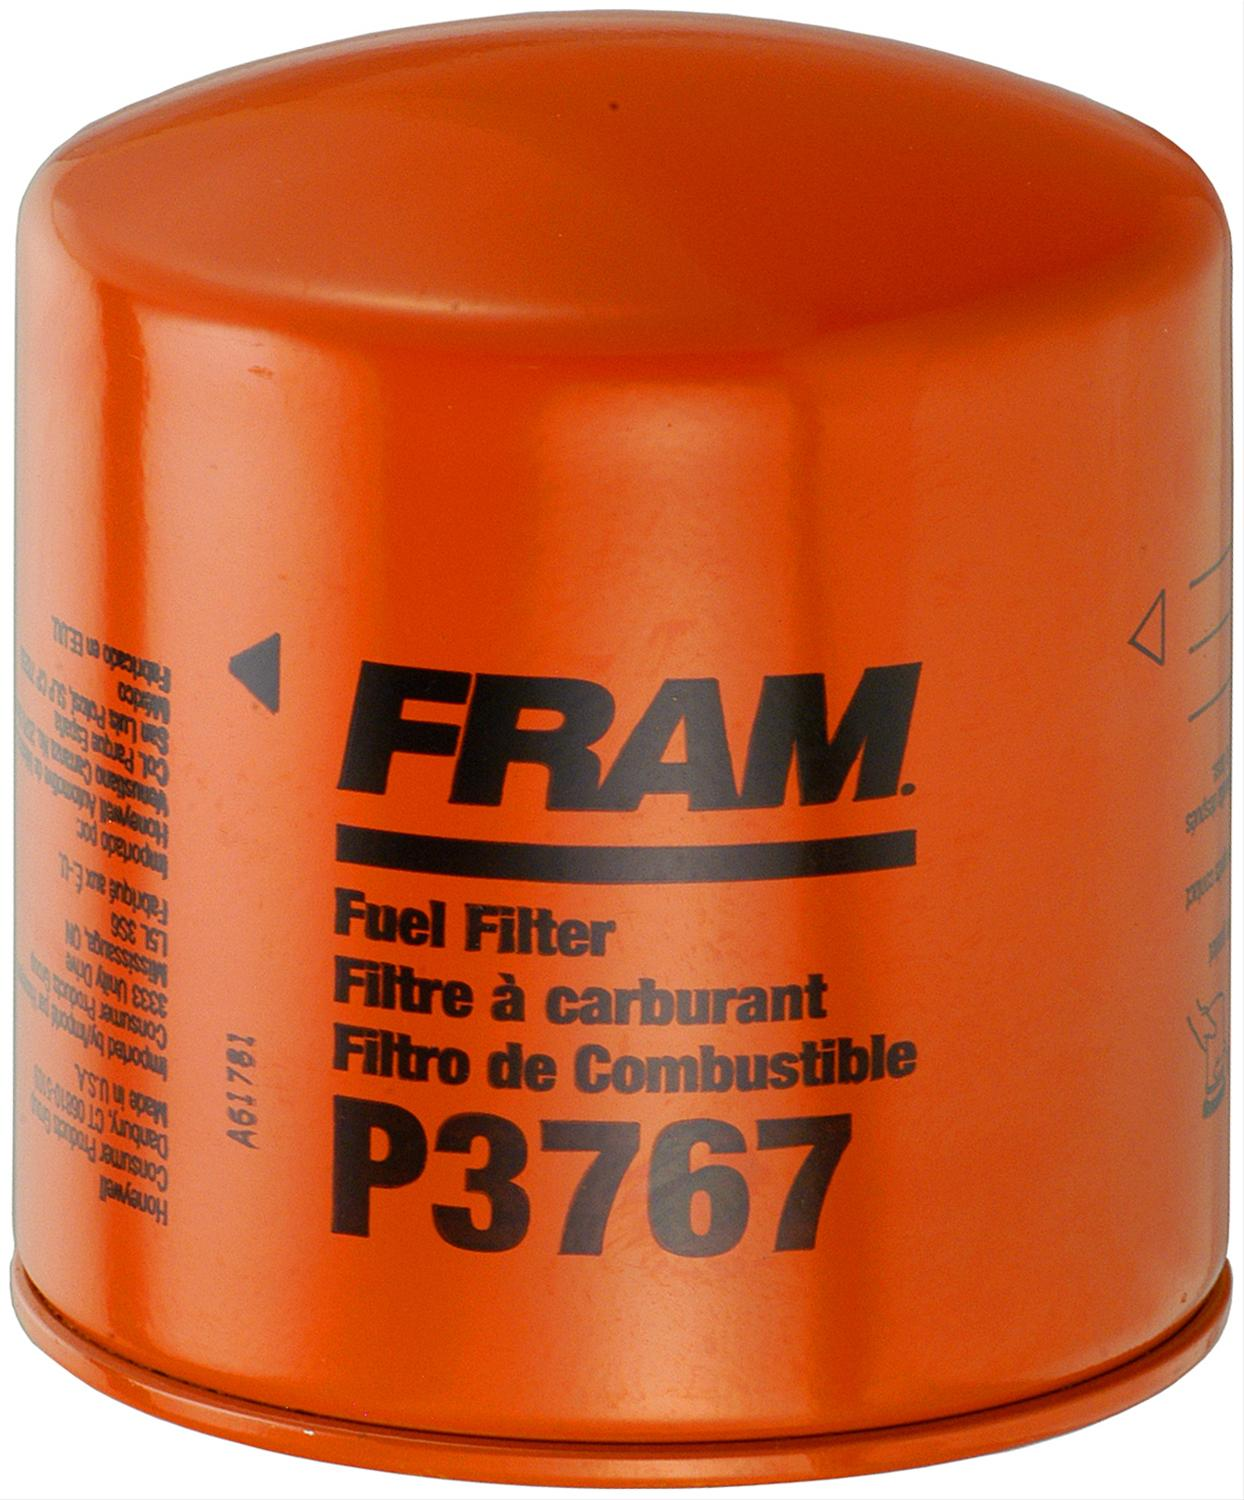 Fram Fuel Filters P3767 - Free Shipping on Orders Over $99 at Summit Racing